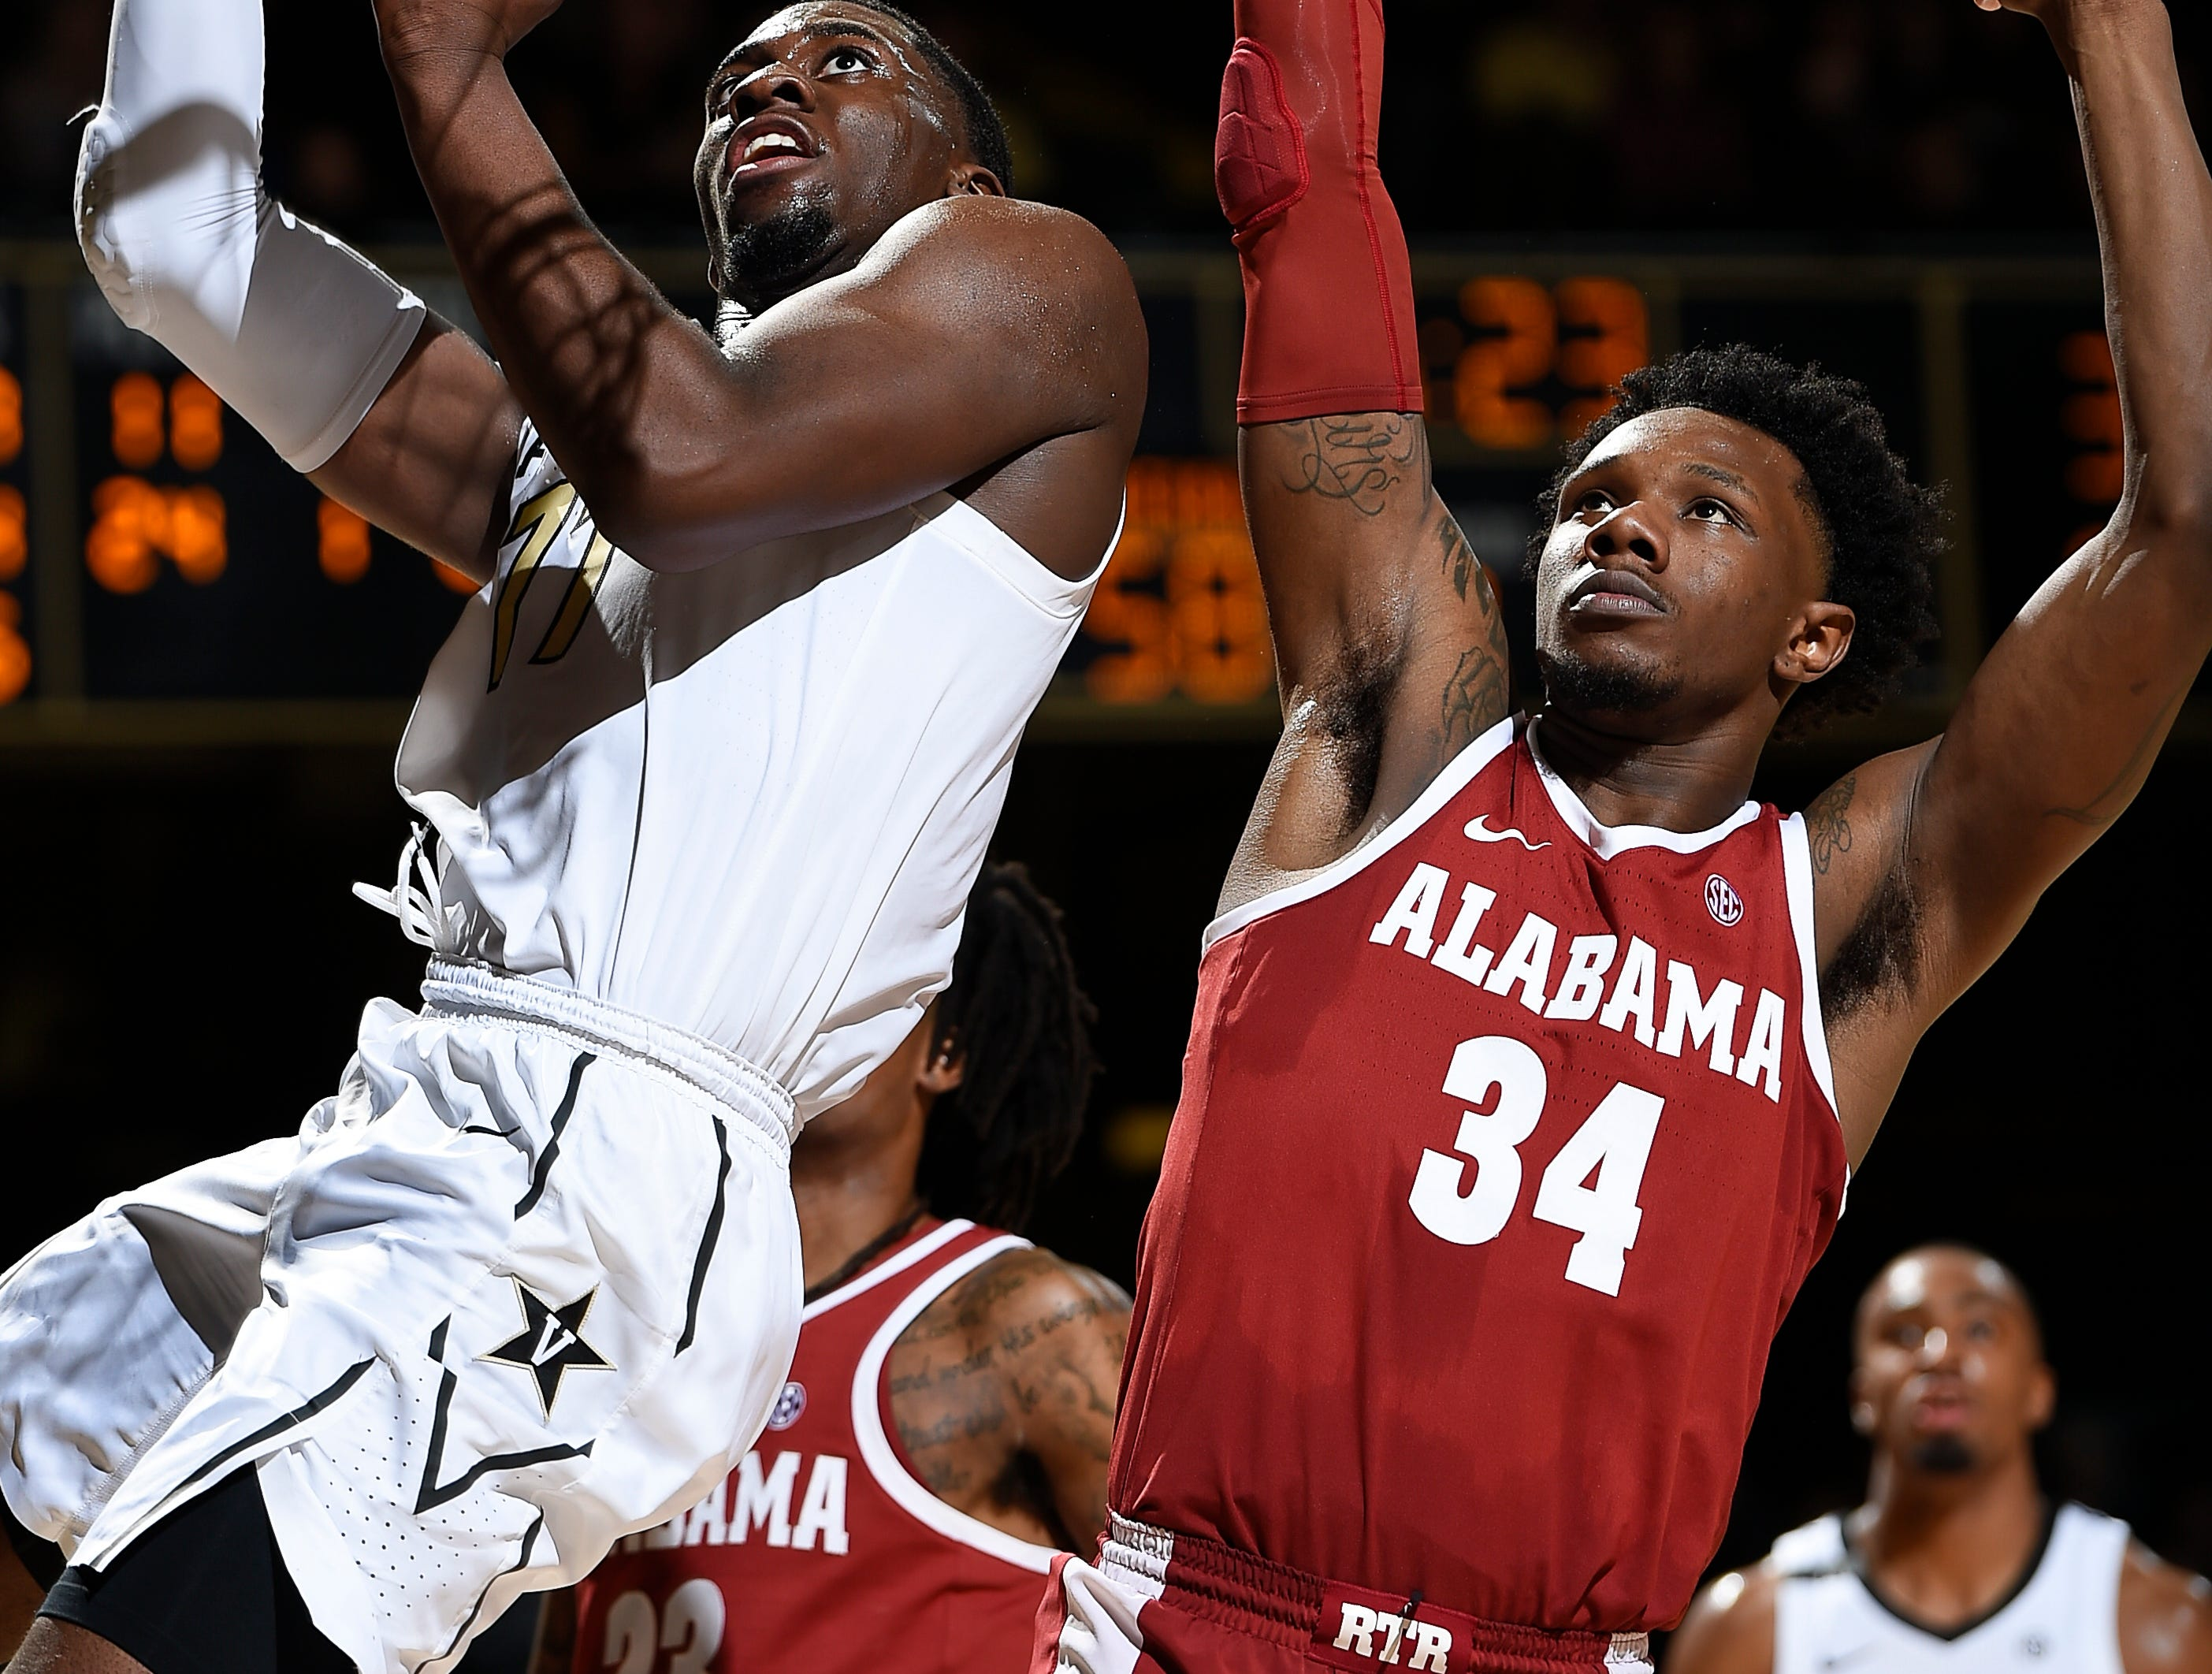 Vanderbilt forward Simisola Shittu (11) shoots over Alabama guard Tervin Mack (34) during the second half at Memorial Gym Saturday Feb. 9, 2019 in Nashville, Tenn.